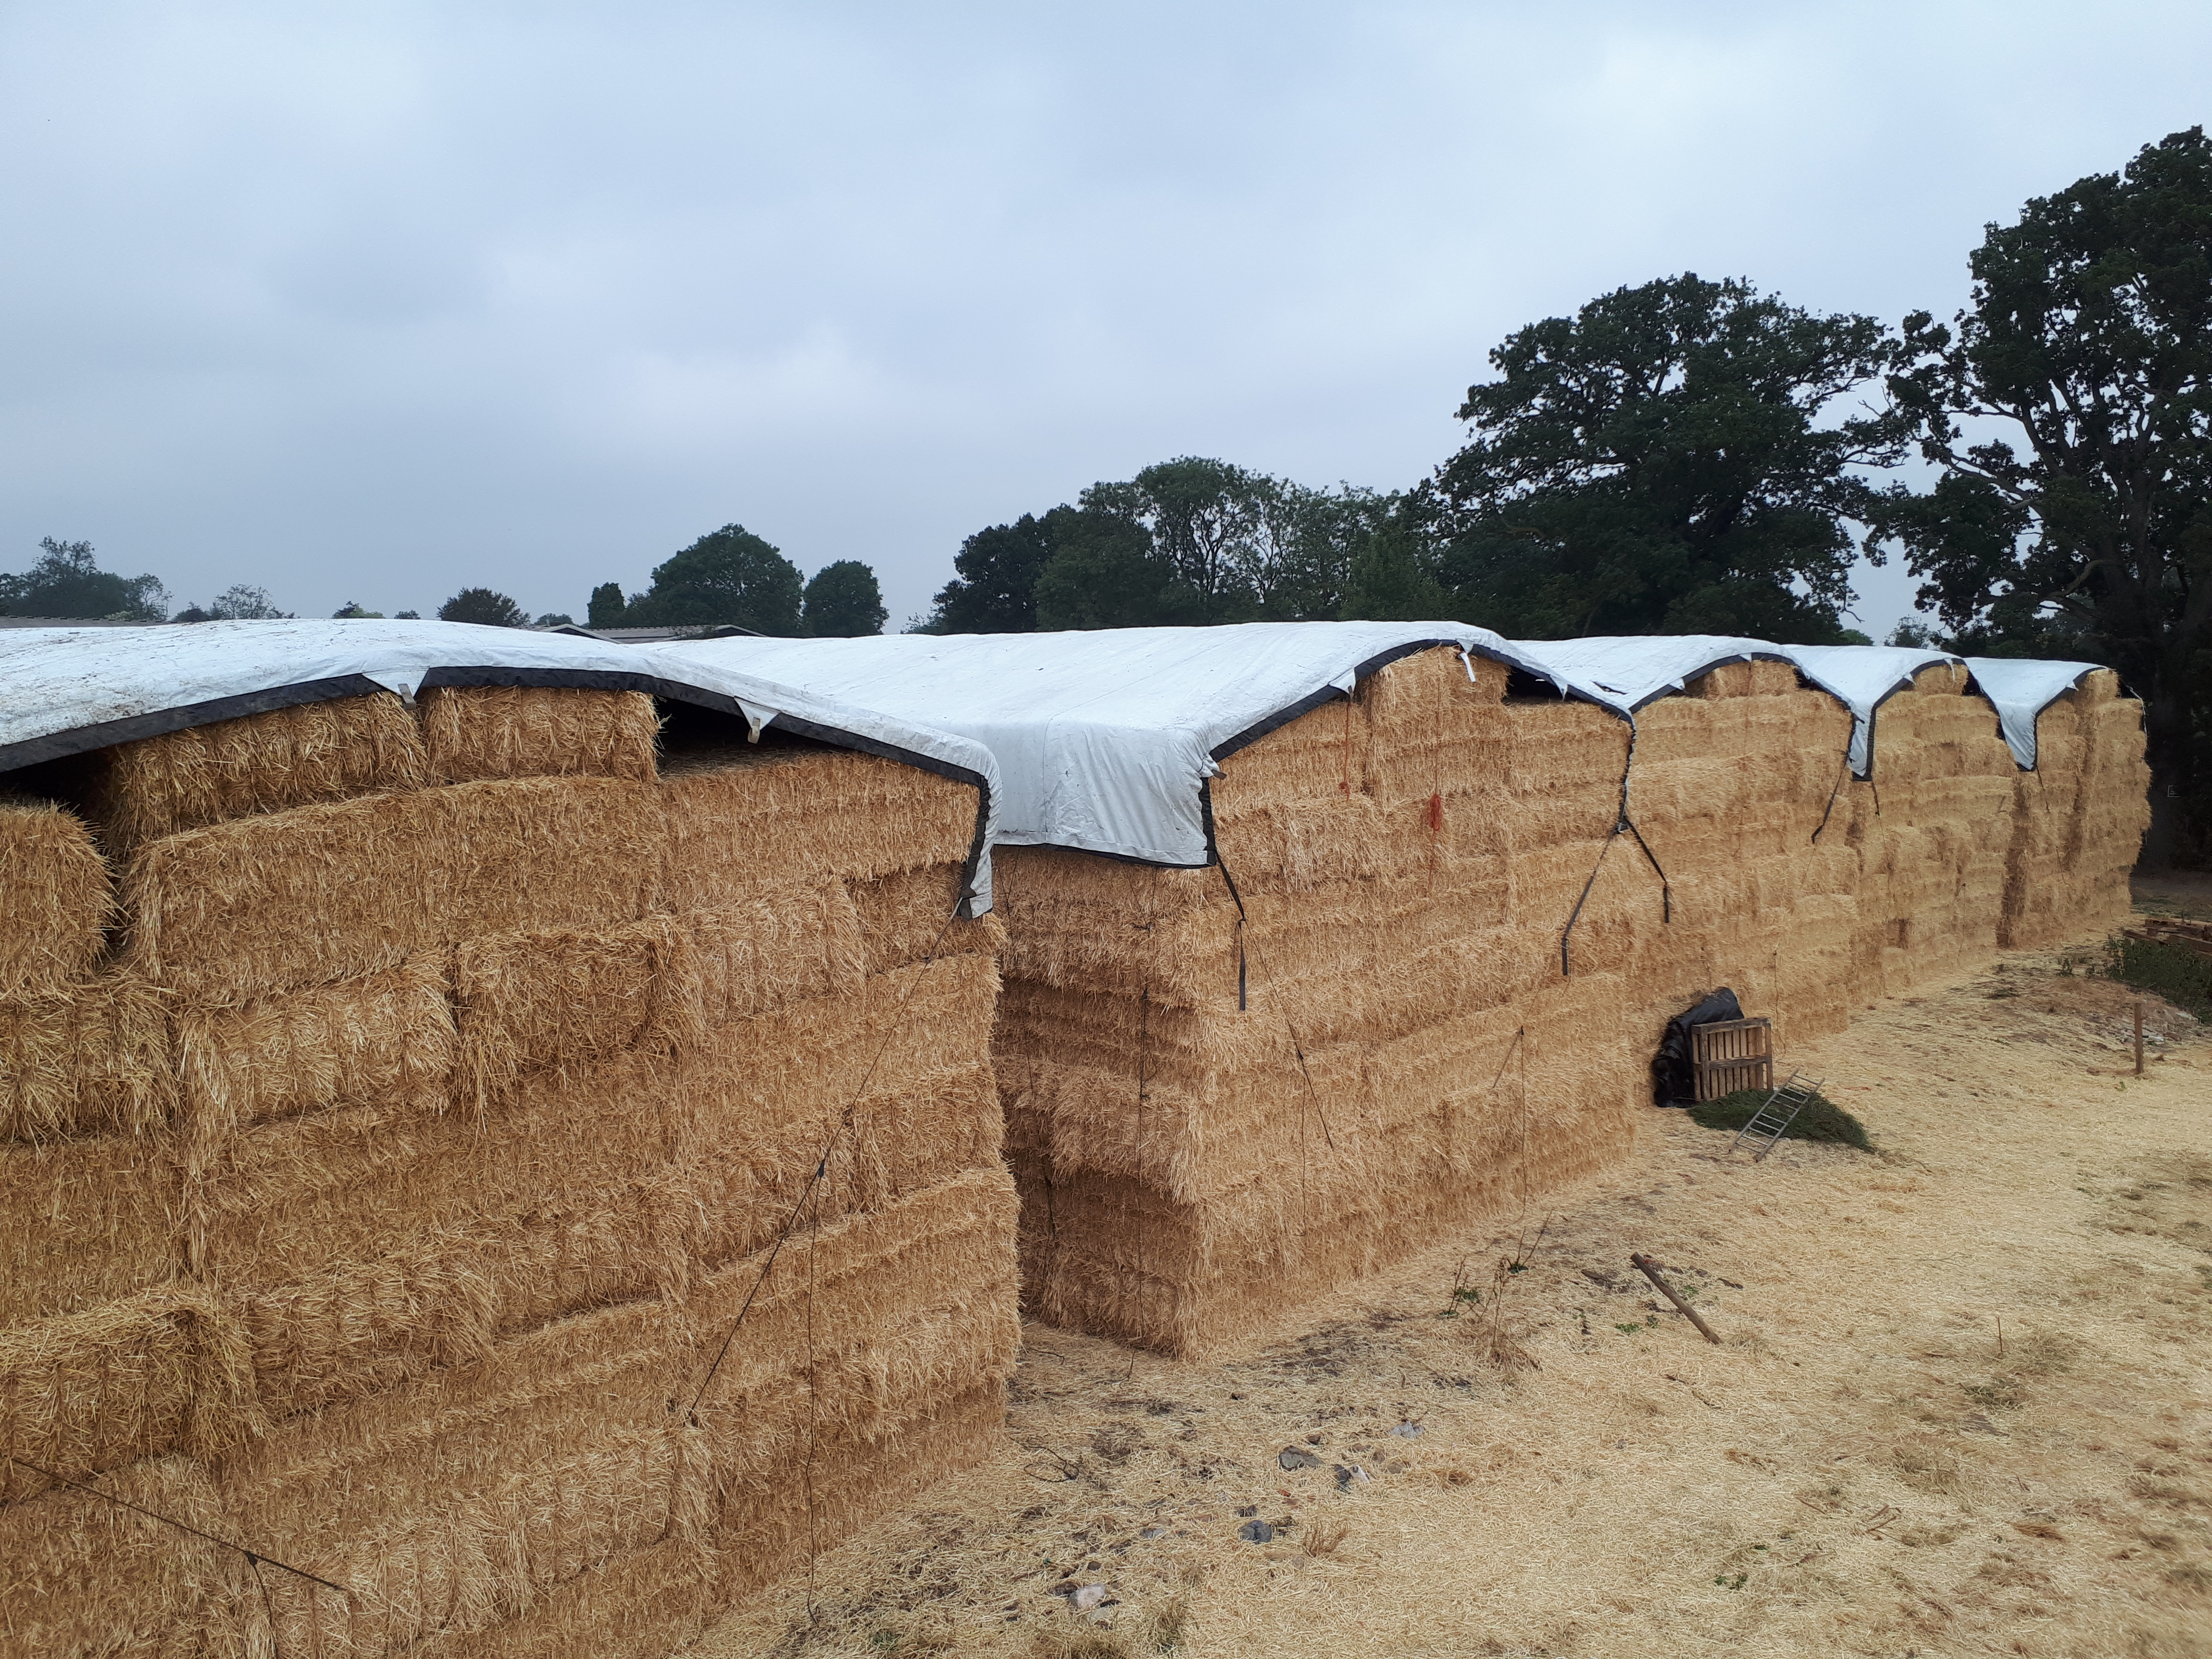 Square Straw stack with  performer Tarpaulins